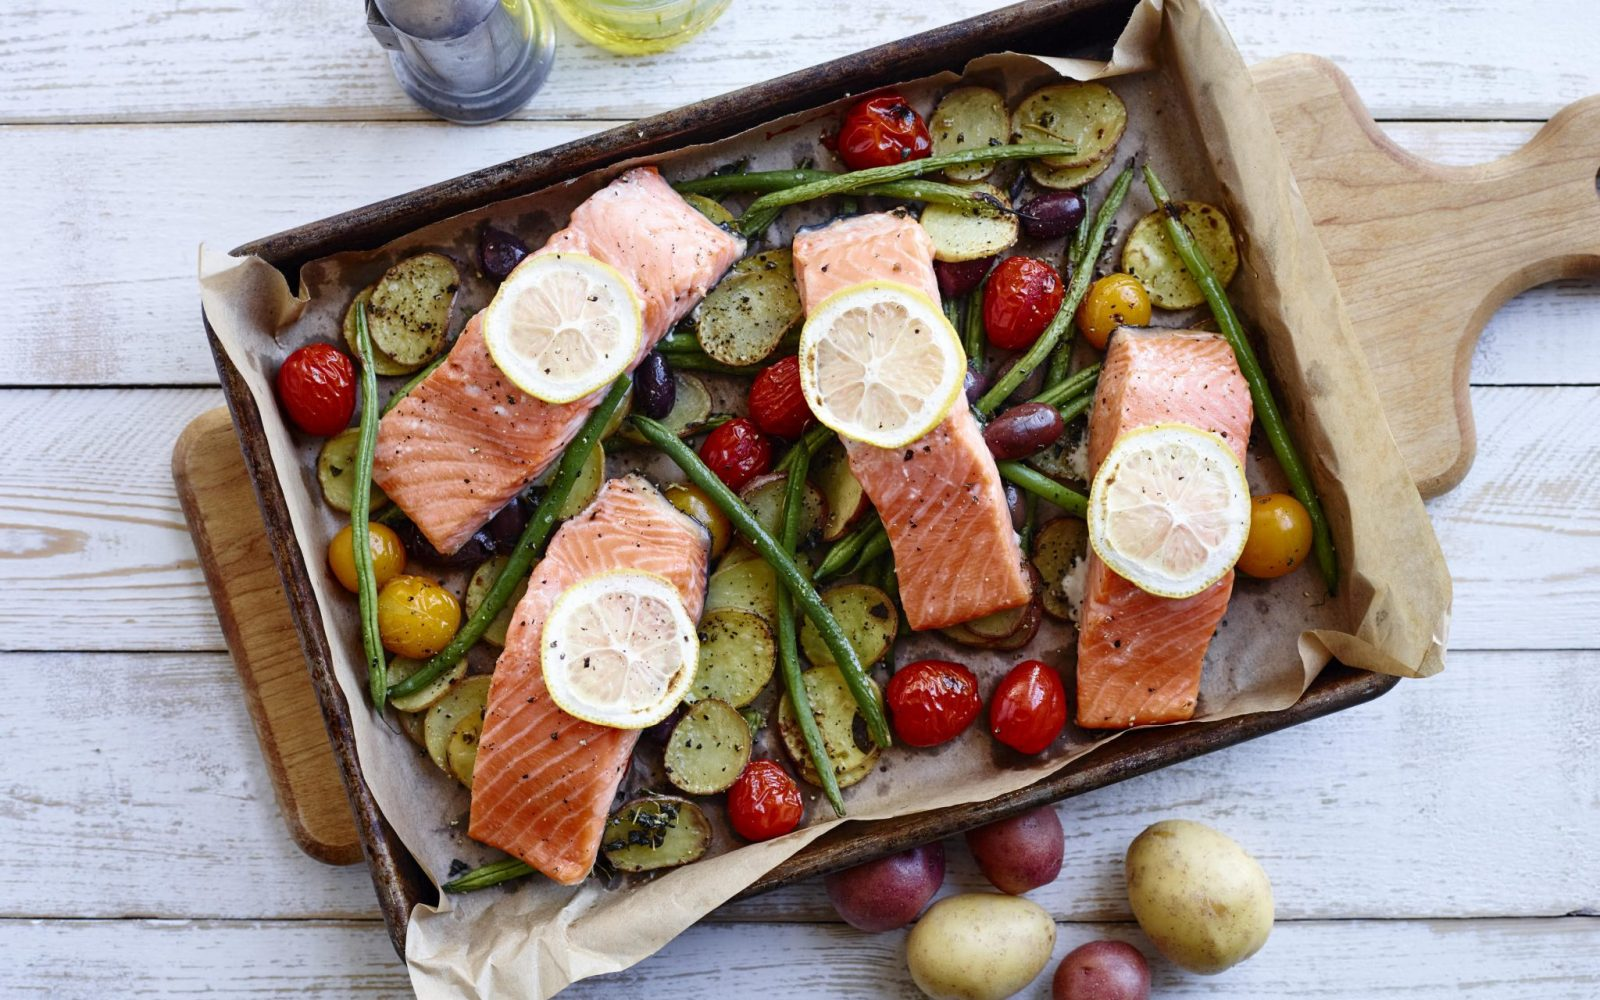 Date Night Salmon and Potato Bake with Mint Yogurt Sauce